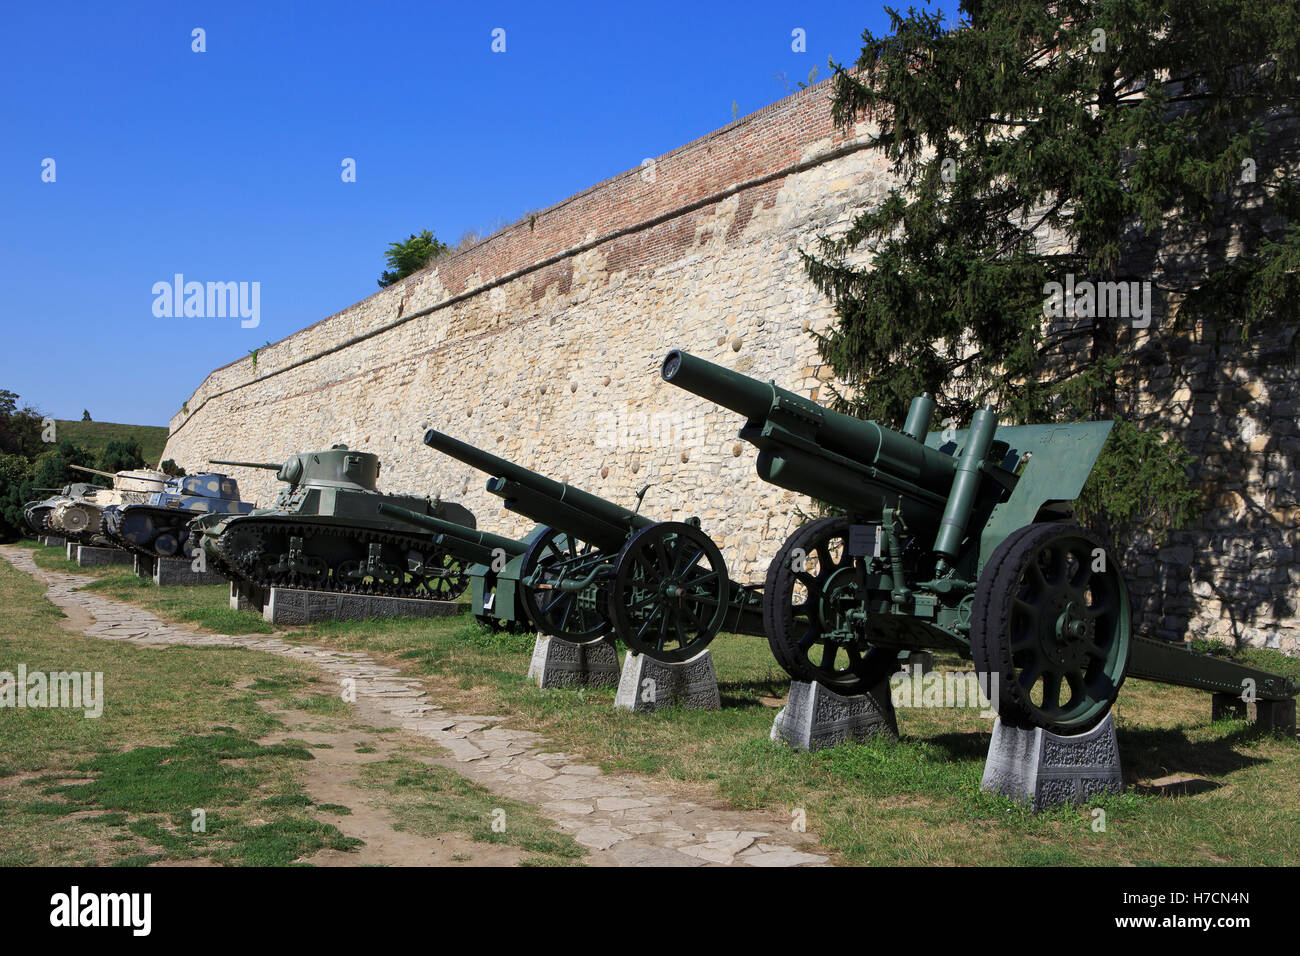 Howitzers and tanks at the Military Museum in Belgrade, SErbia - Stock Image